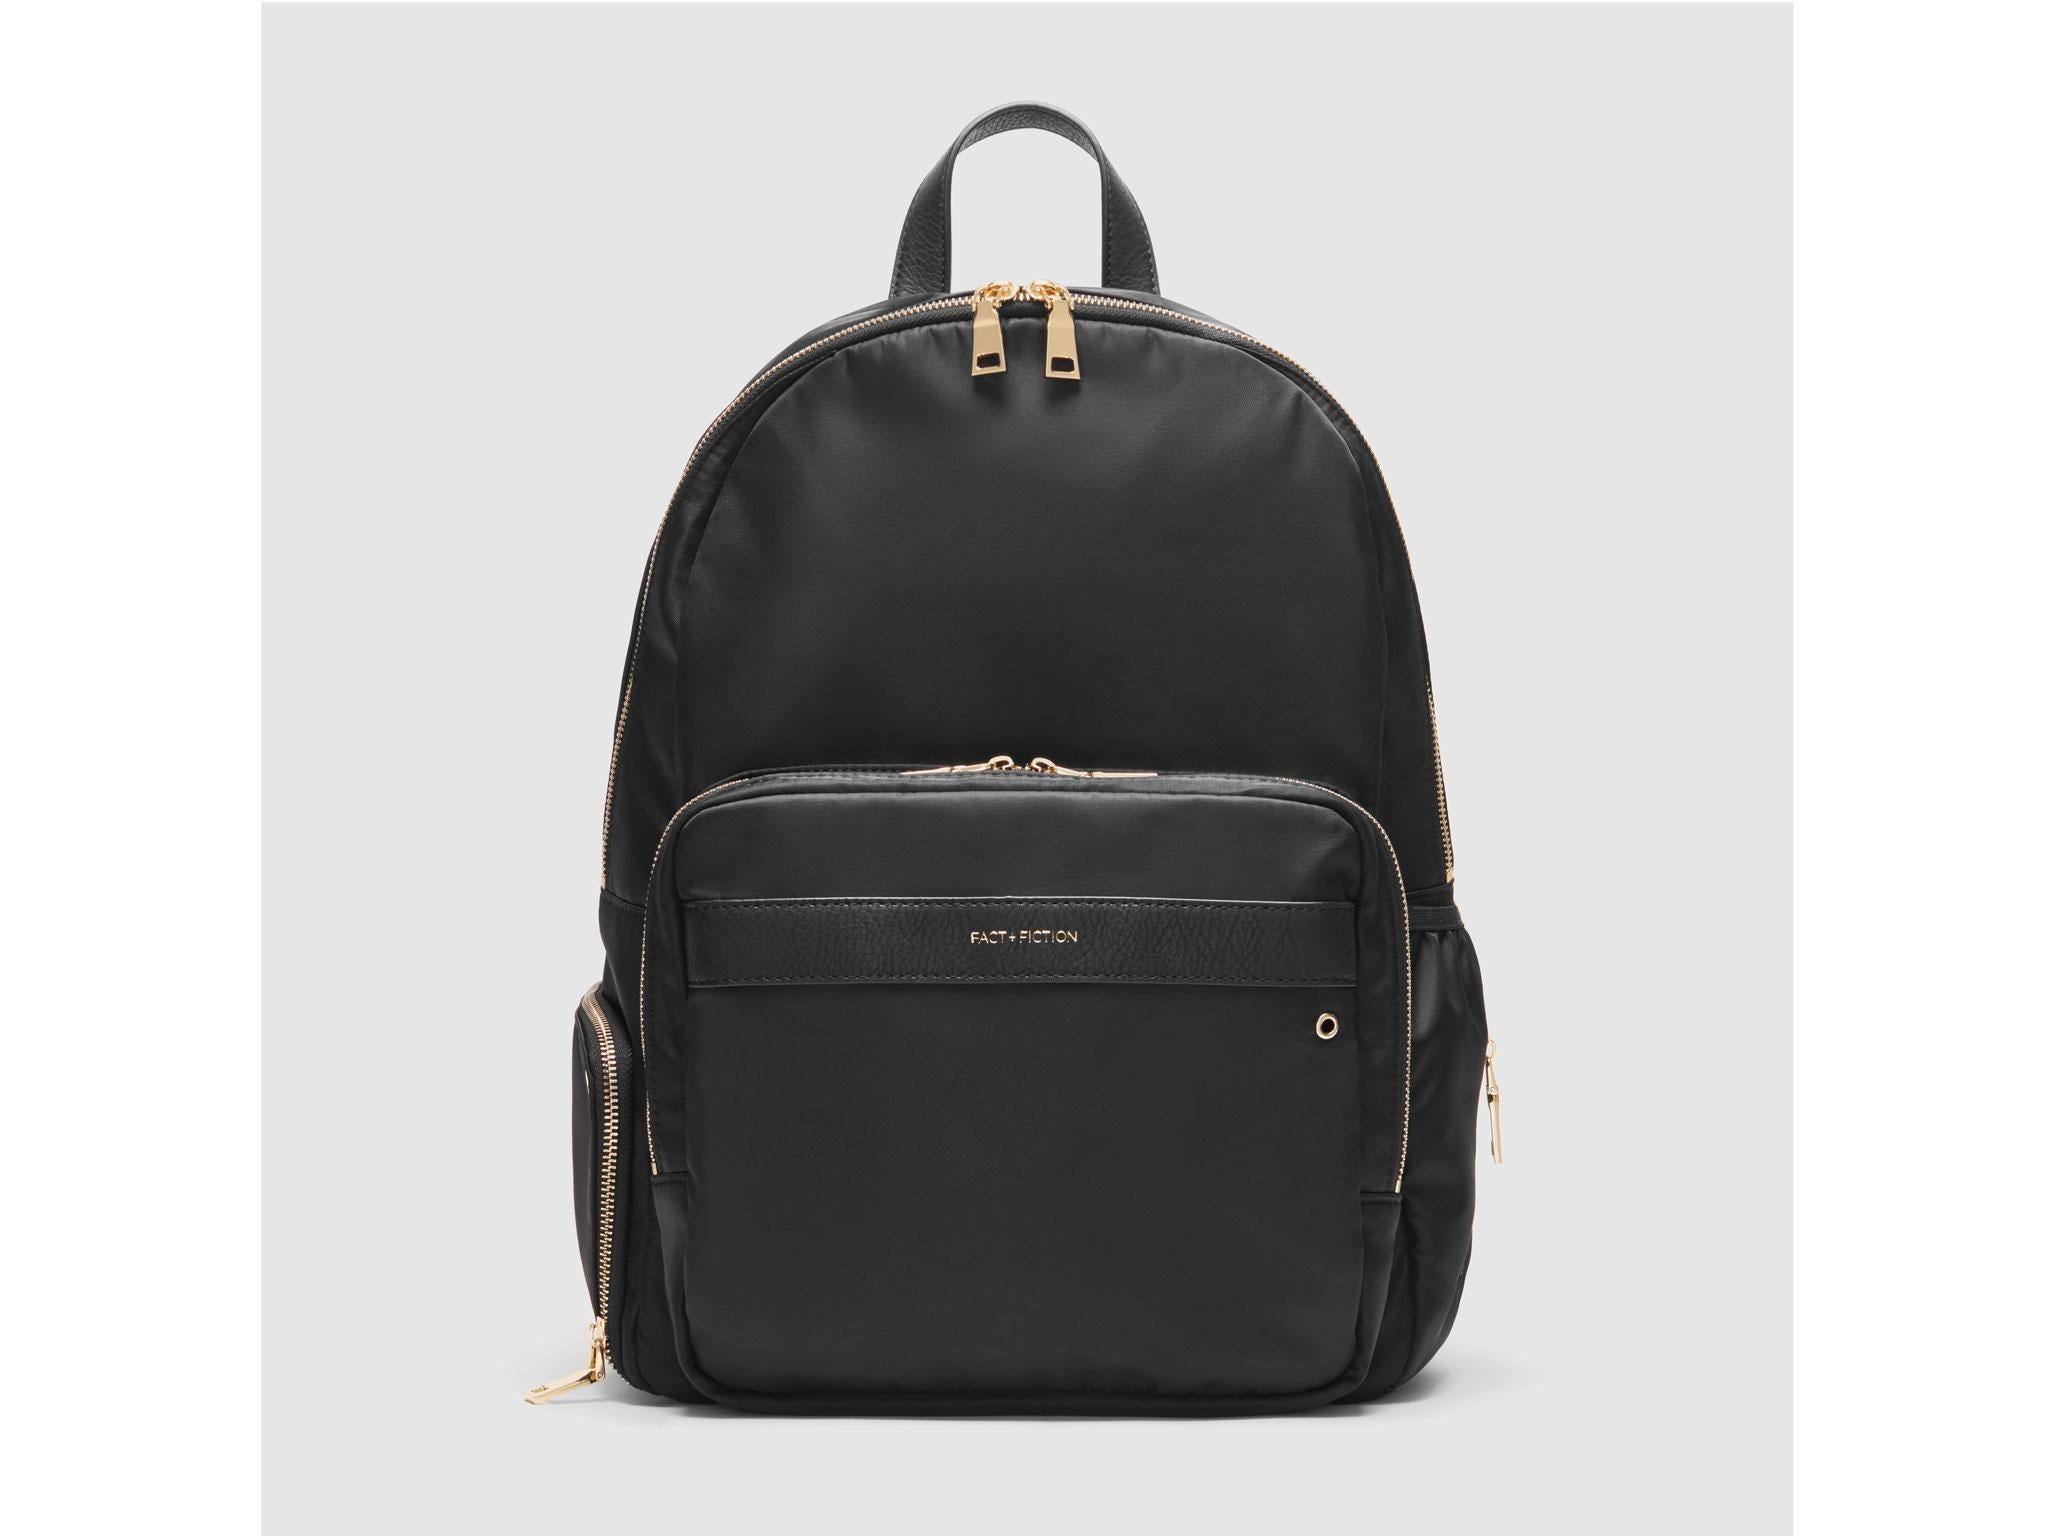 c6fecb14ddd6 Fact + Fiction Lea backpack in black + gold